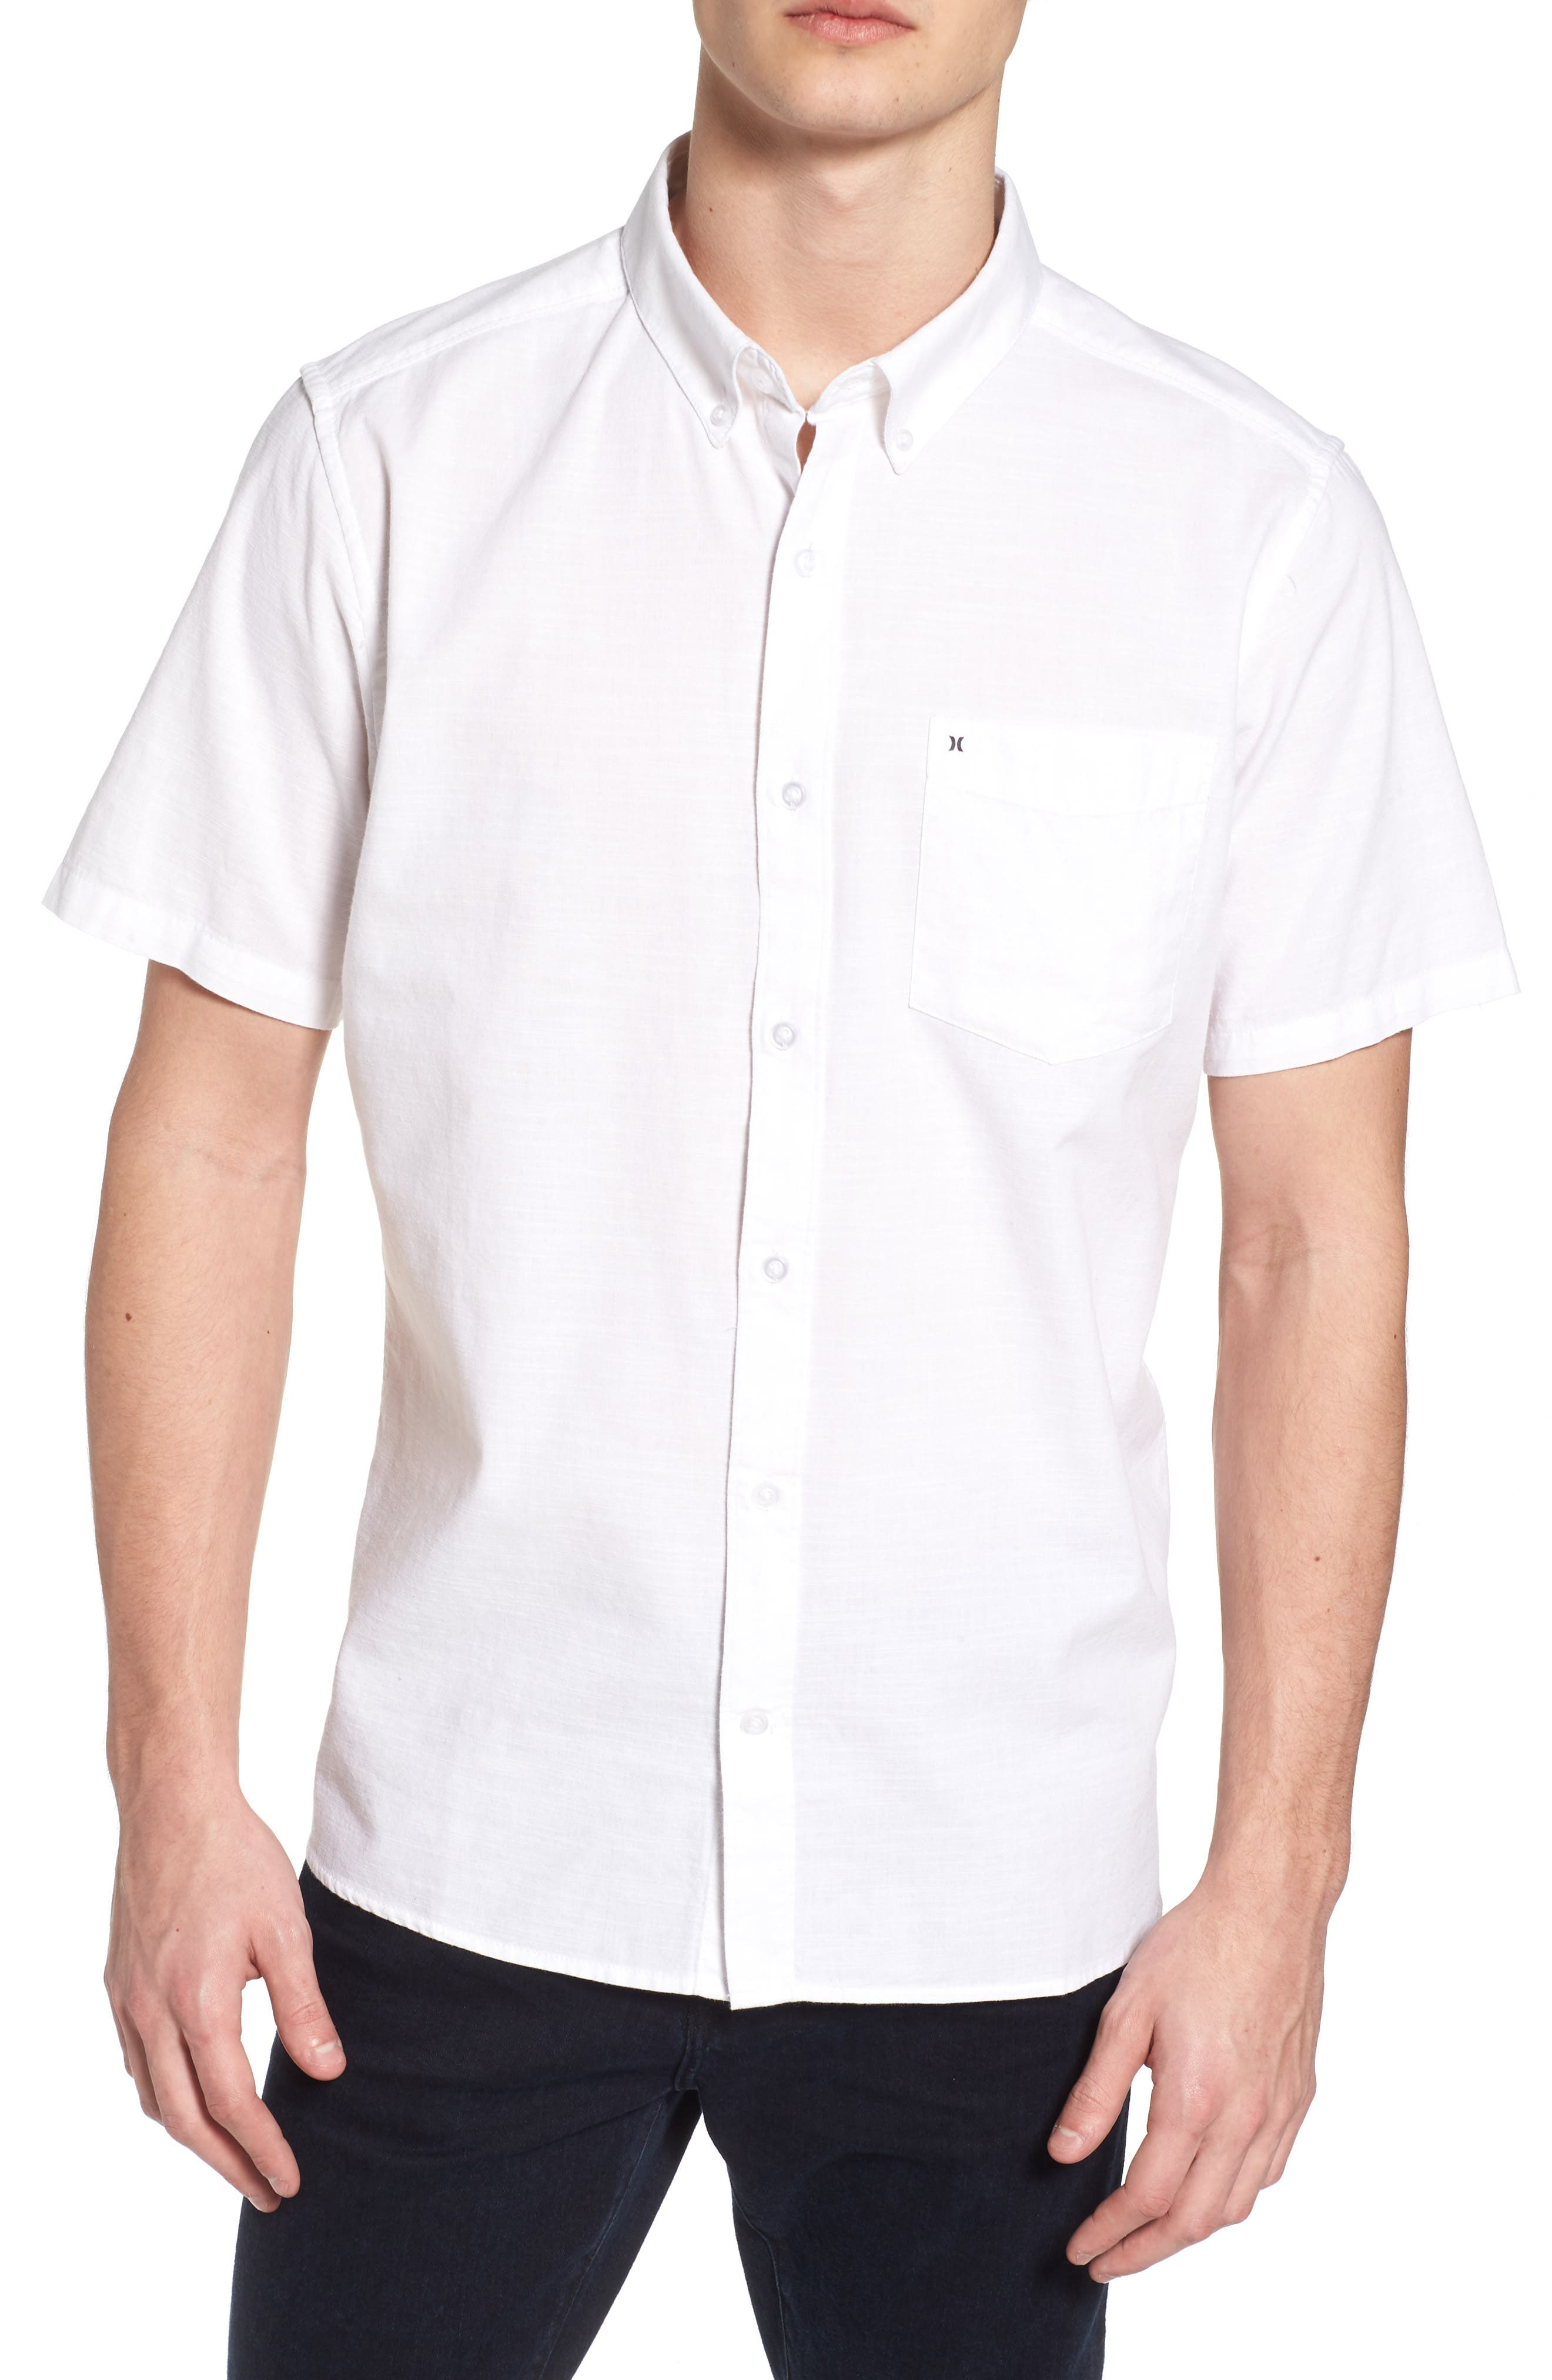 One & Only 2.0 Woven Shirt,                         Main,                         color, White